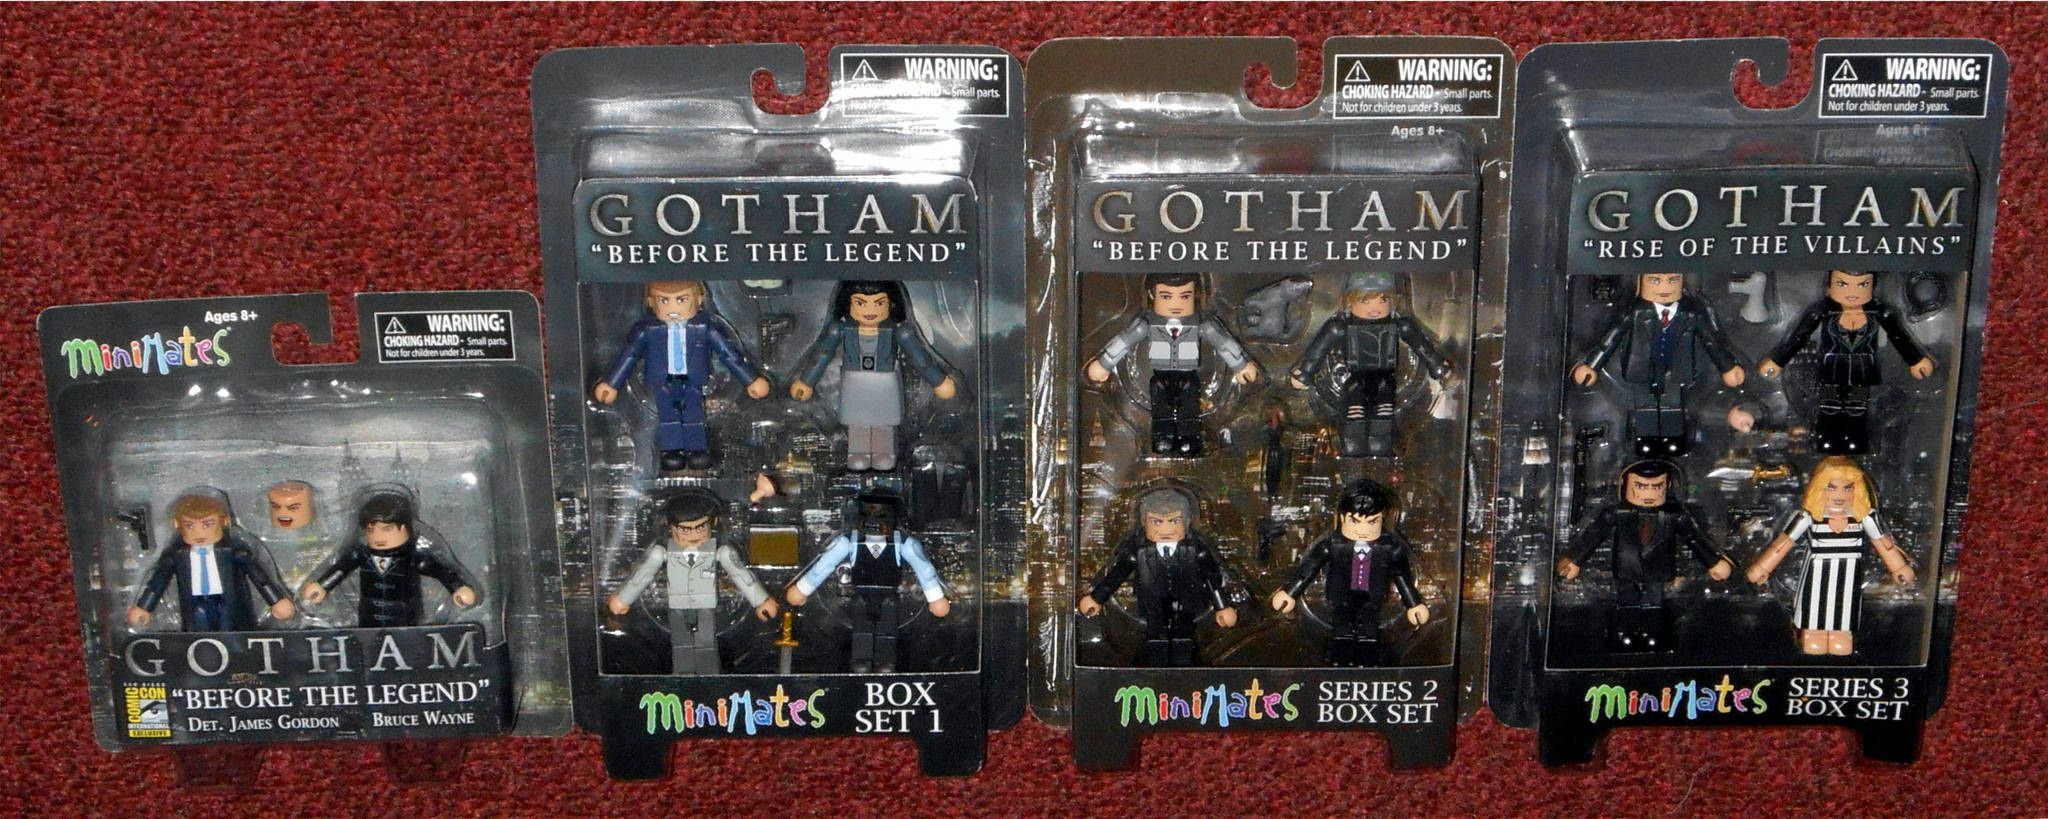 "Gotham Minimates /""Rise of the Villains/"" Series 3 Box Set"